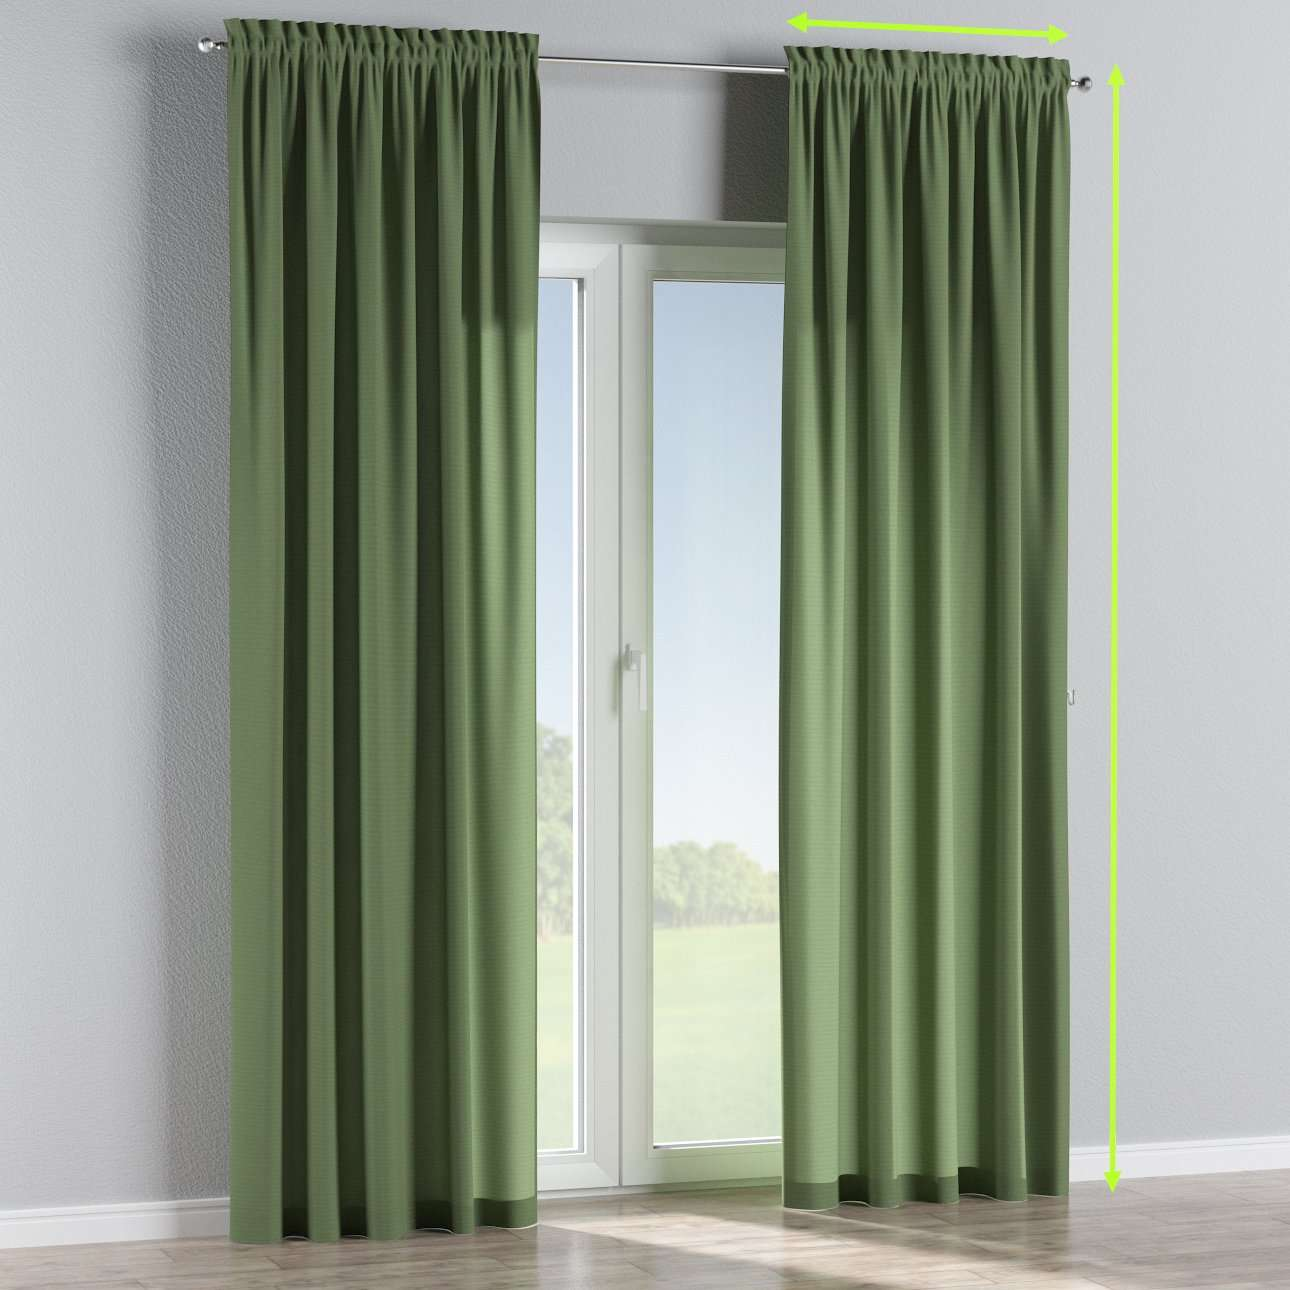 Slot and frill curtains in collection Jupiter, fabric: 127-52